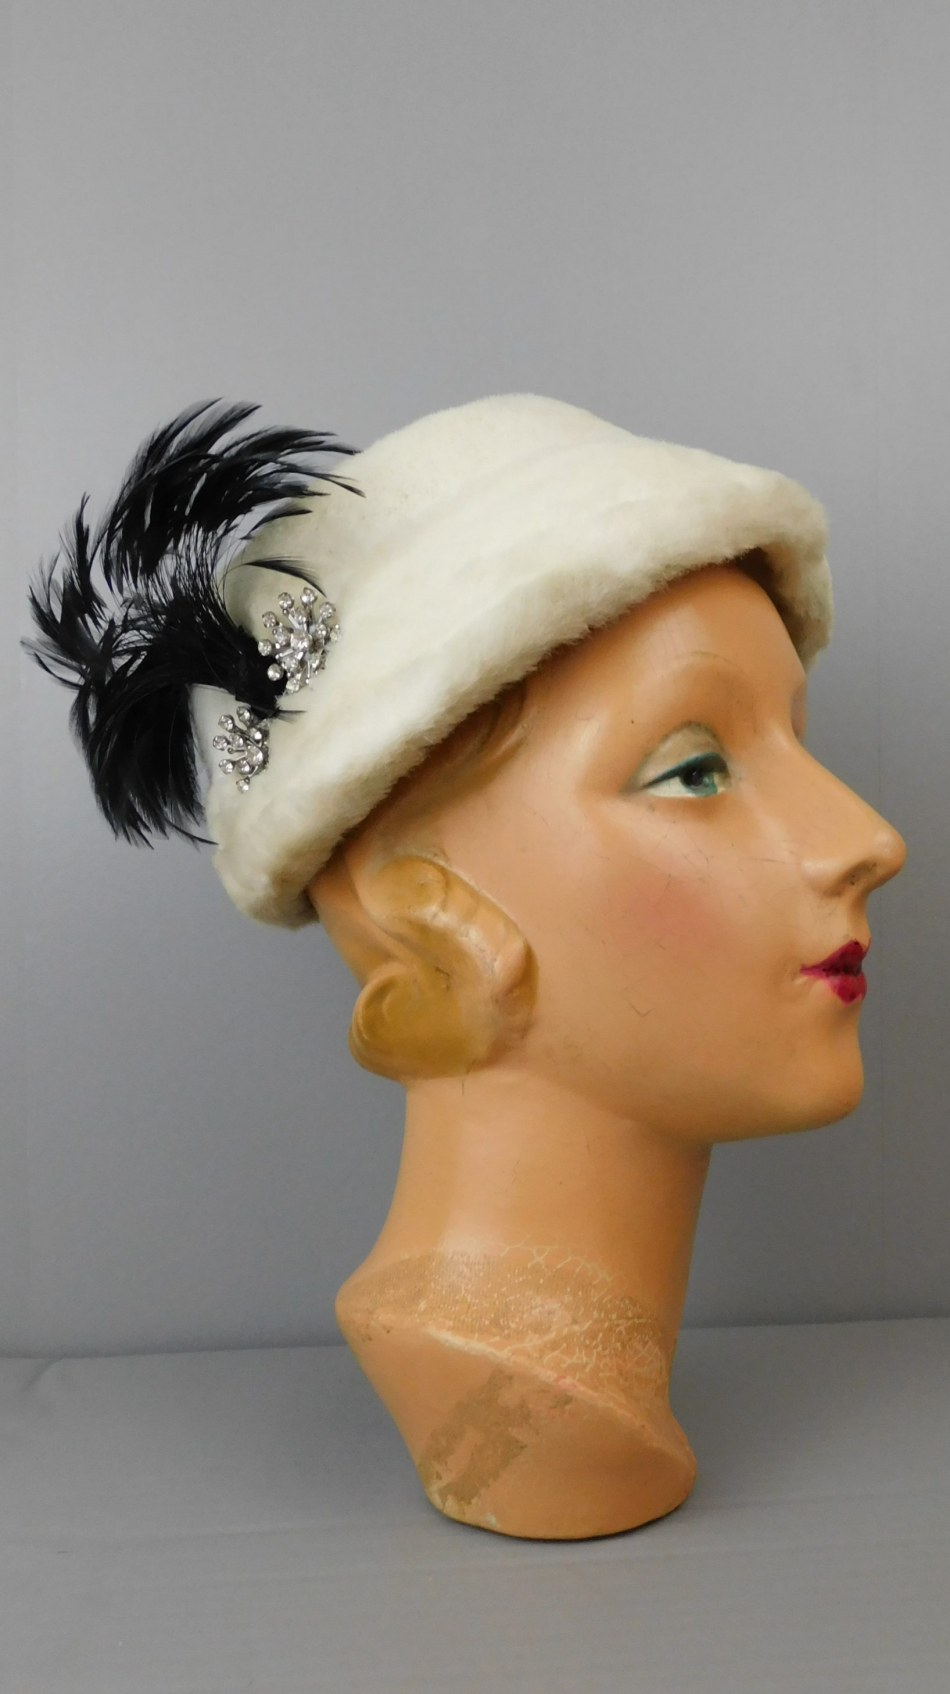 Vintage White Faux Fur Hat with Black Feathers and Rhinestones, 1950s, 21 inch head